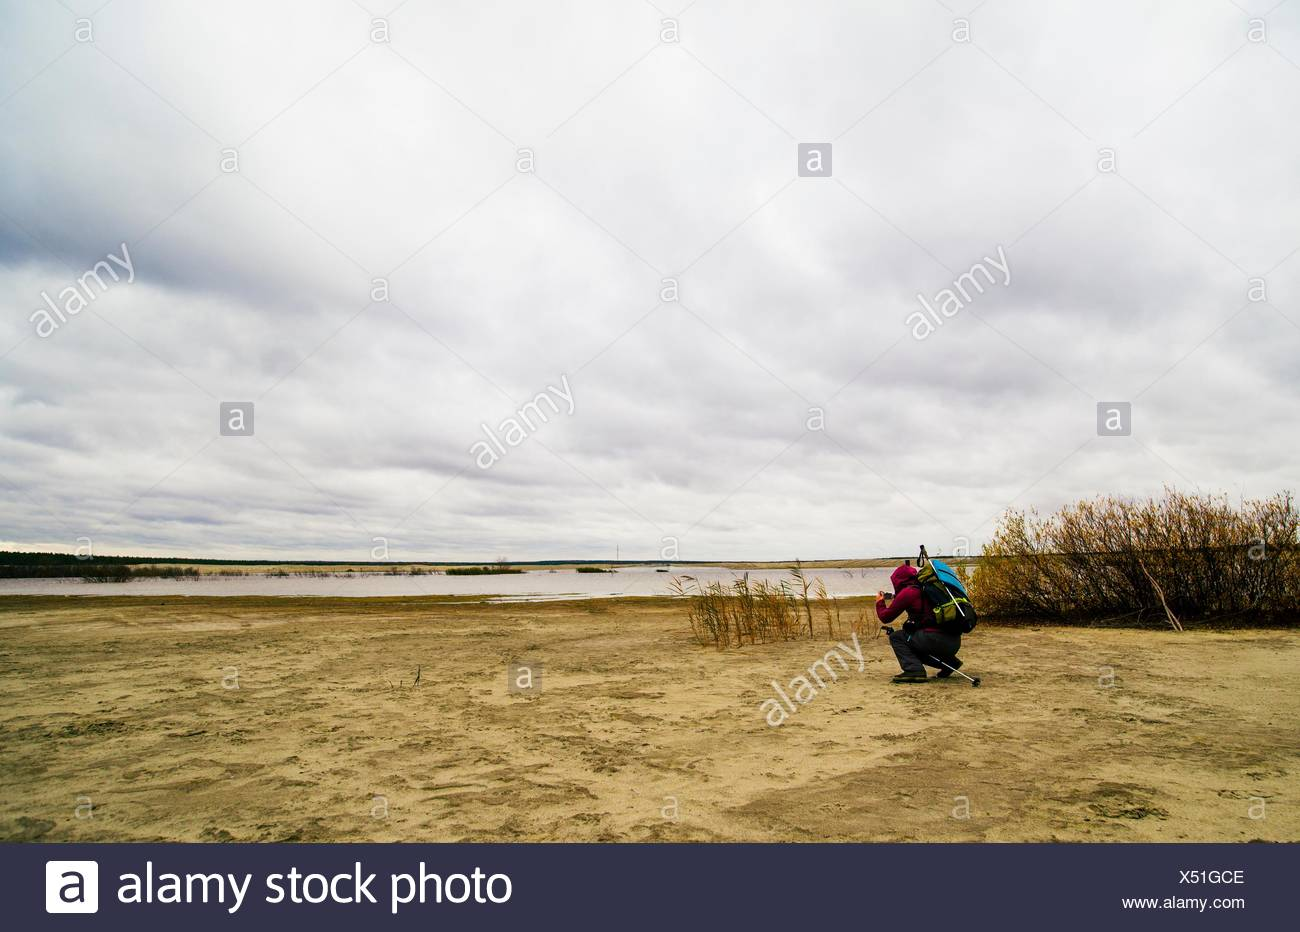 Young man hiking, crouching, taking photograph of lake view, rear view Stock Photo